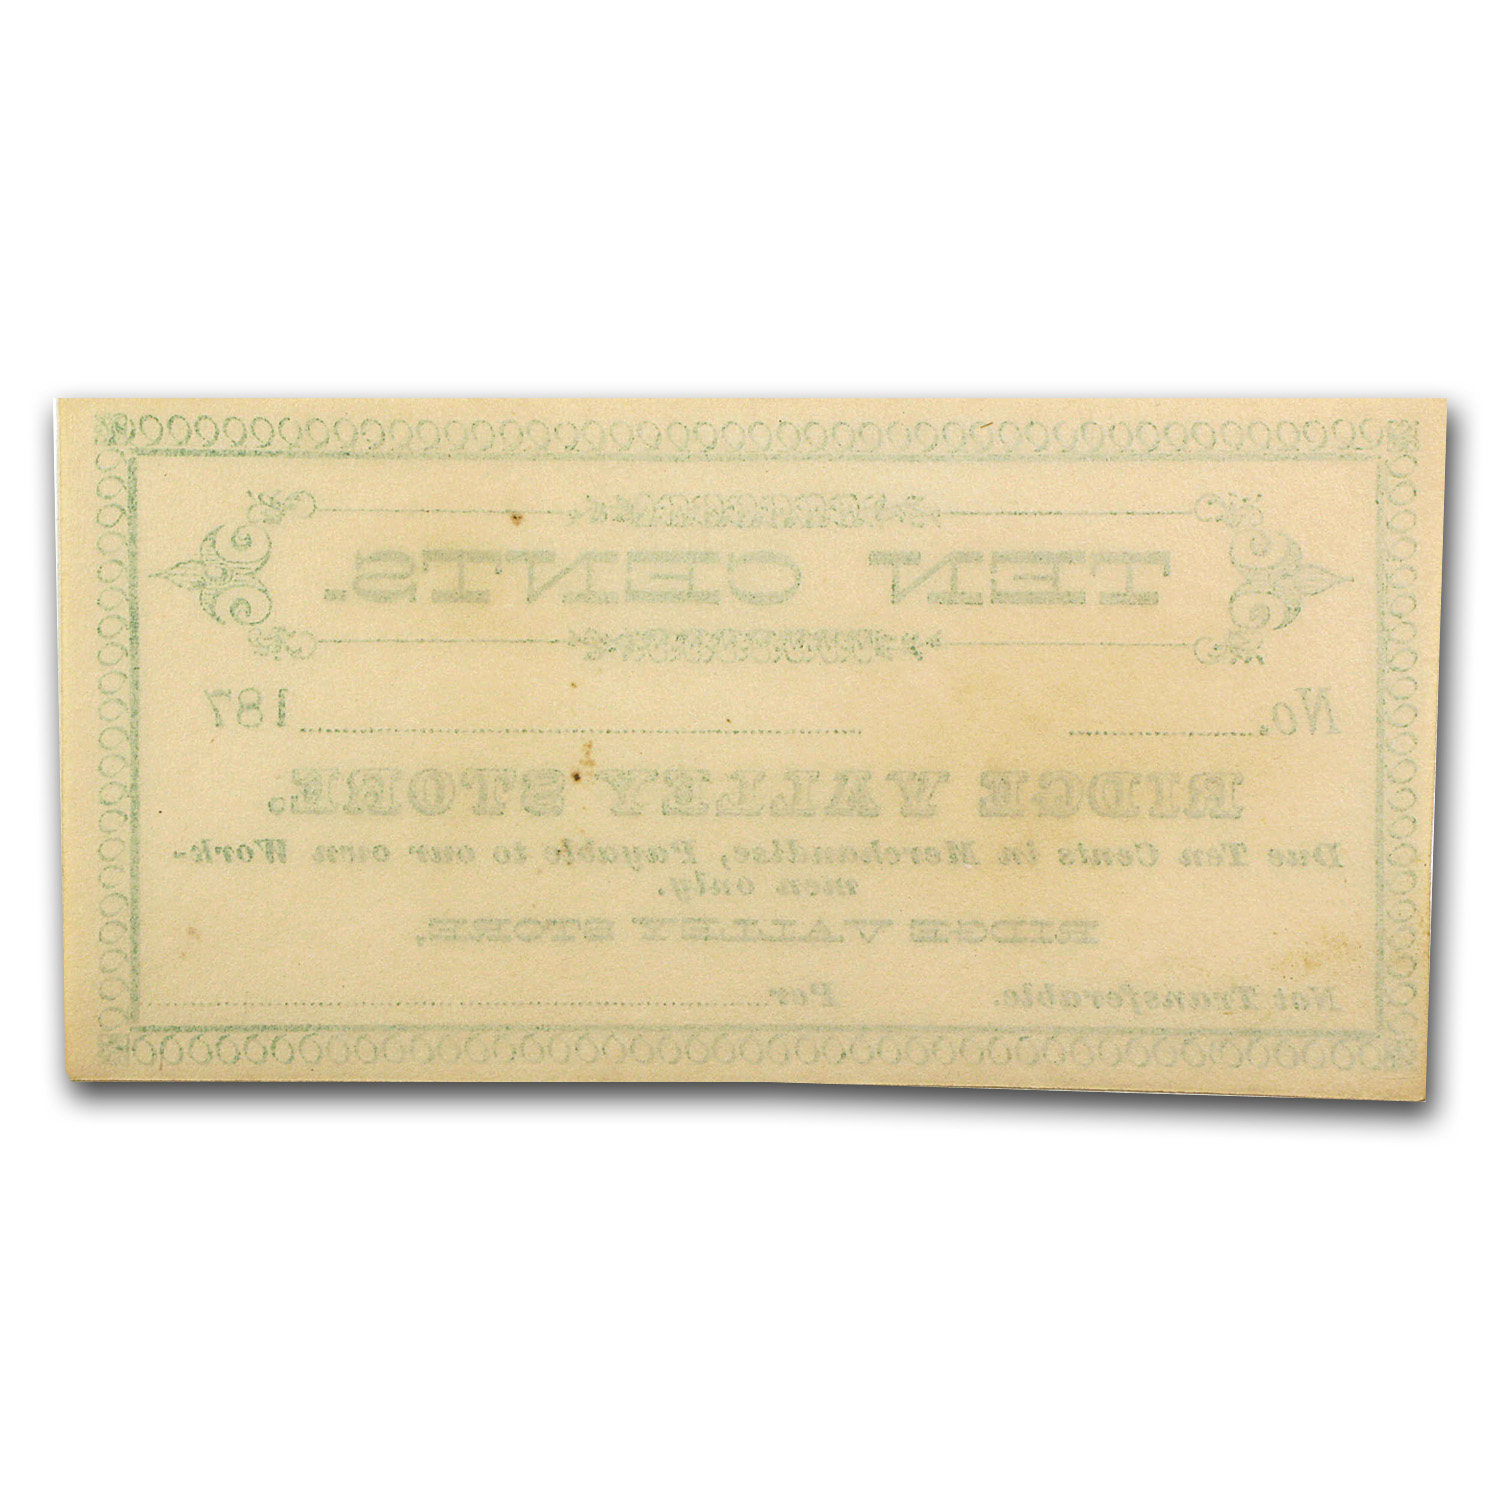 1870s Ridge Valley Store 10 Cents Scrip Note CU